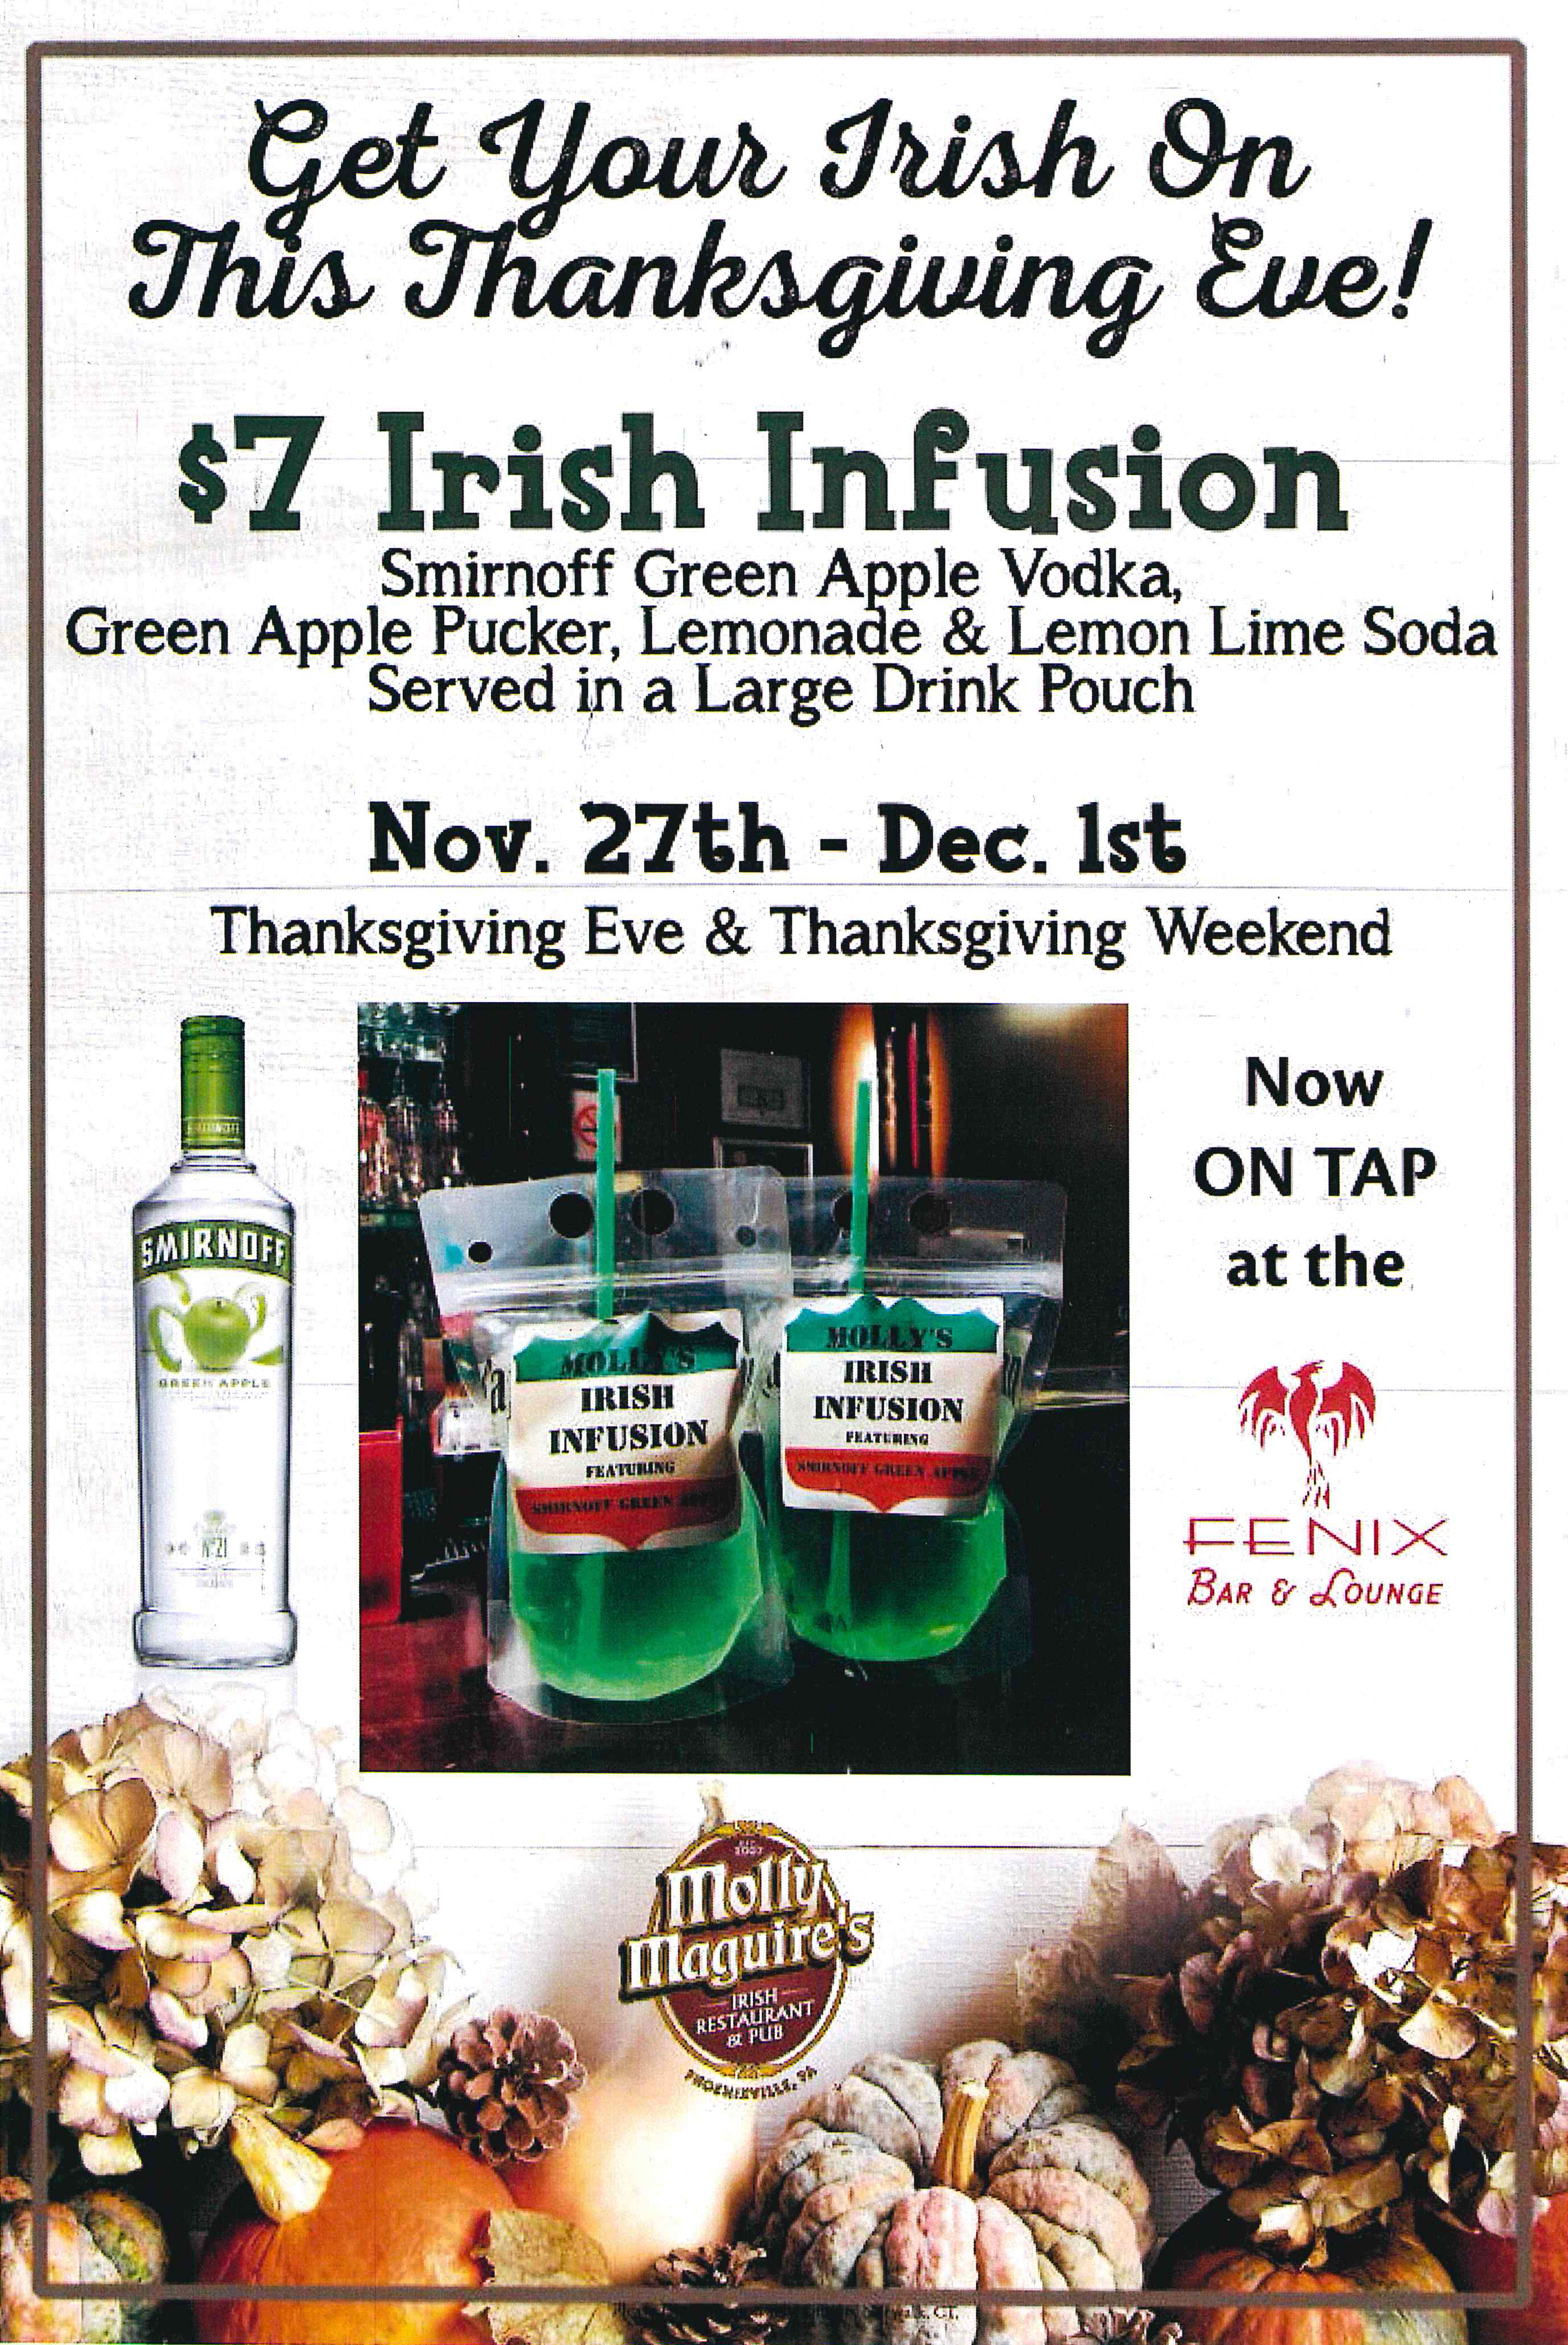 Get Your Irish On This Thanksgiving Eve!  $7 Irish Infusion  Smirnoff Green Apple Vodka, Green Apple Pucker, Lemonade & Lemon Lime Soda, Served in a Large Drink Pouch.   Nov 27th-Dec 1st . Thanksgiving Eve & Thanksgiving Weekend .  Now on Tap at the FENIX !